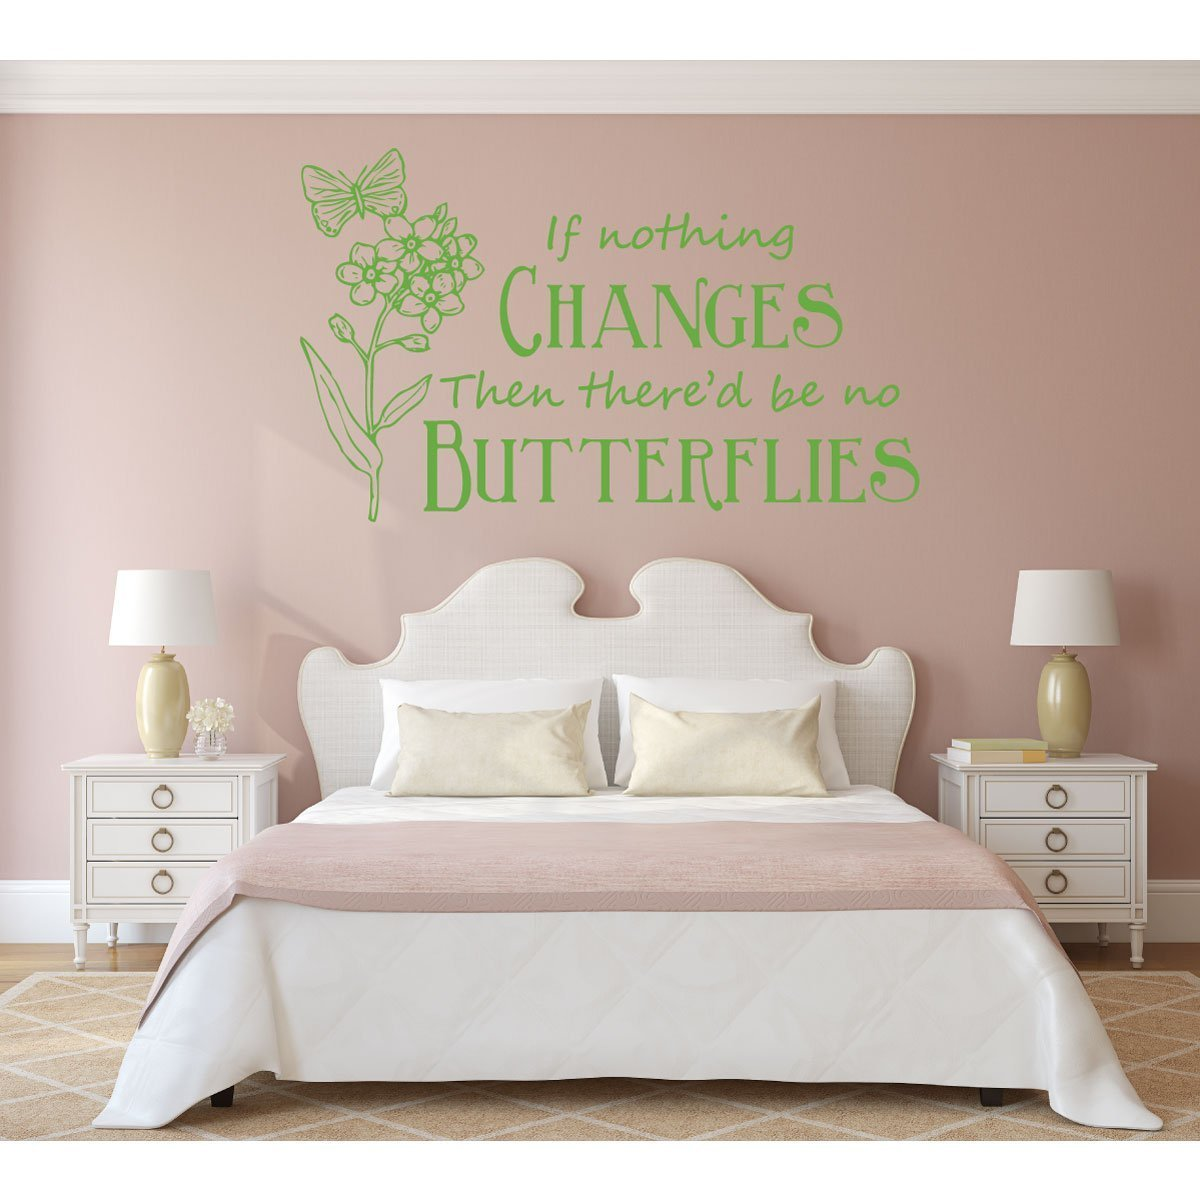 Girls Room Wall Decor - Butterfly Themed Vinyl Decal